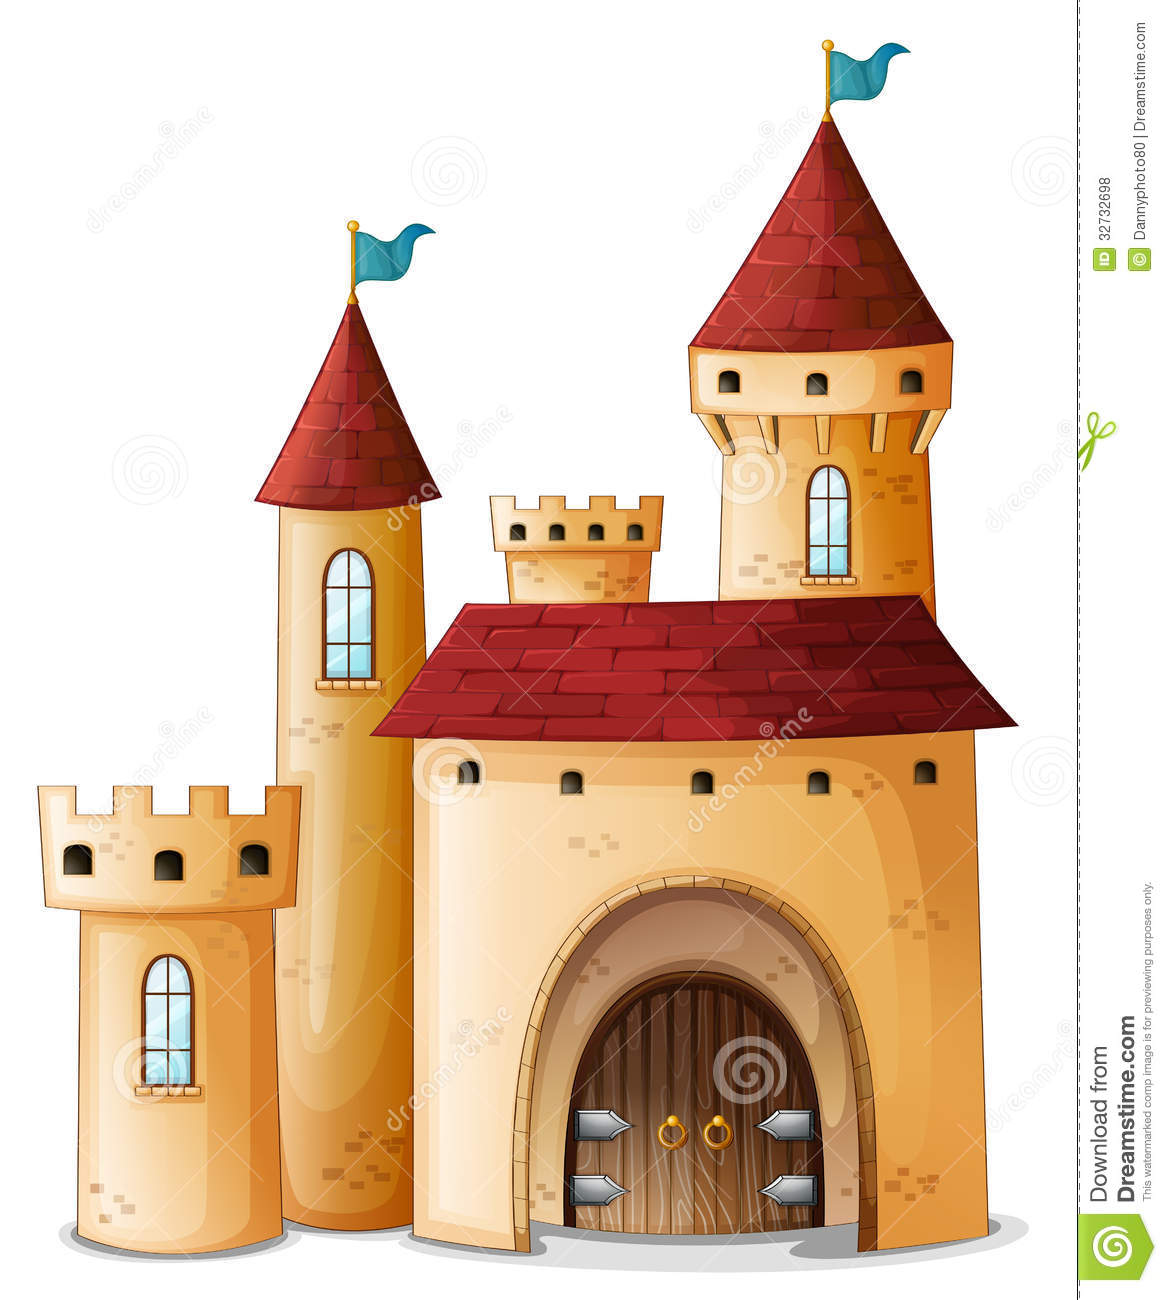 Stock vector of cartoon illustration castle isolated on white - A Beautiful Palace Royalty Free Stock Photos Image 32732698